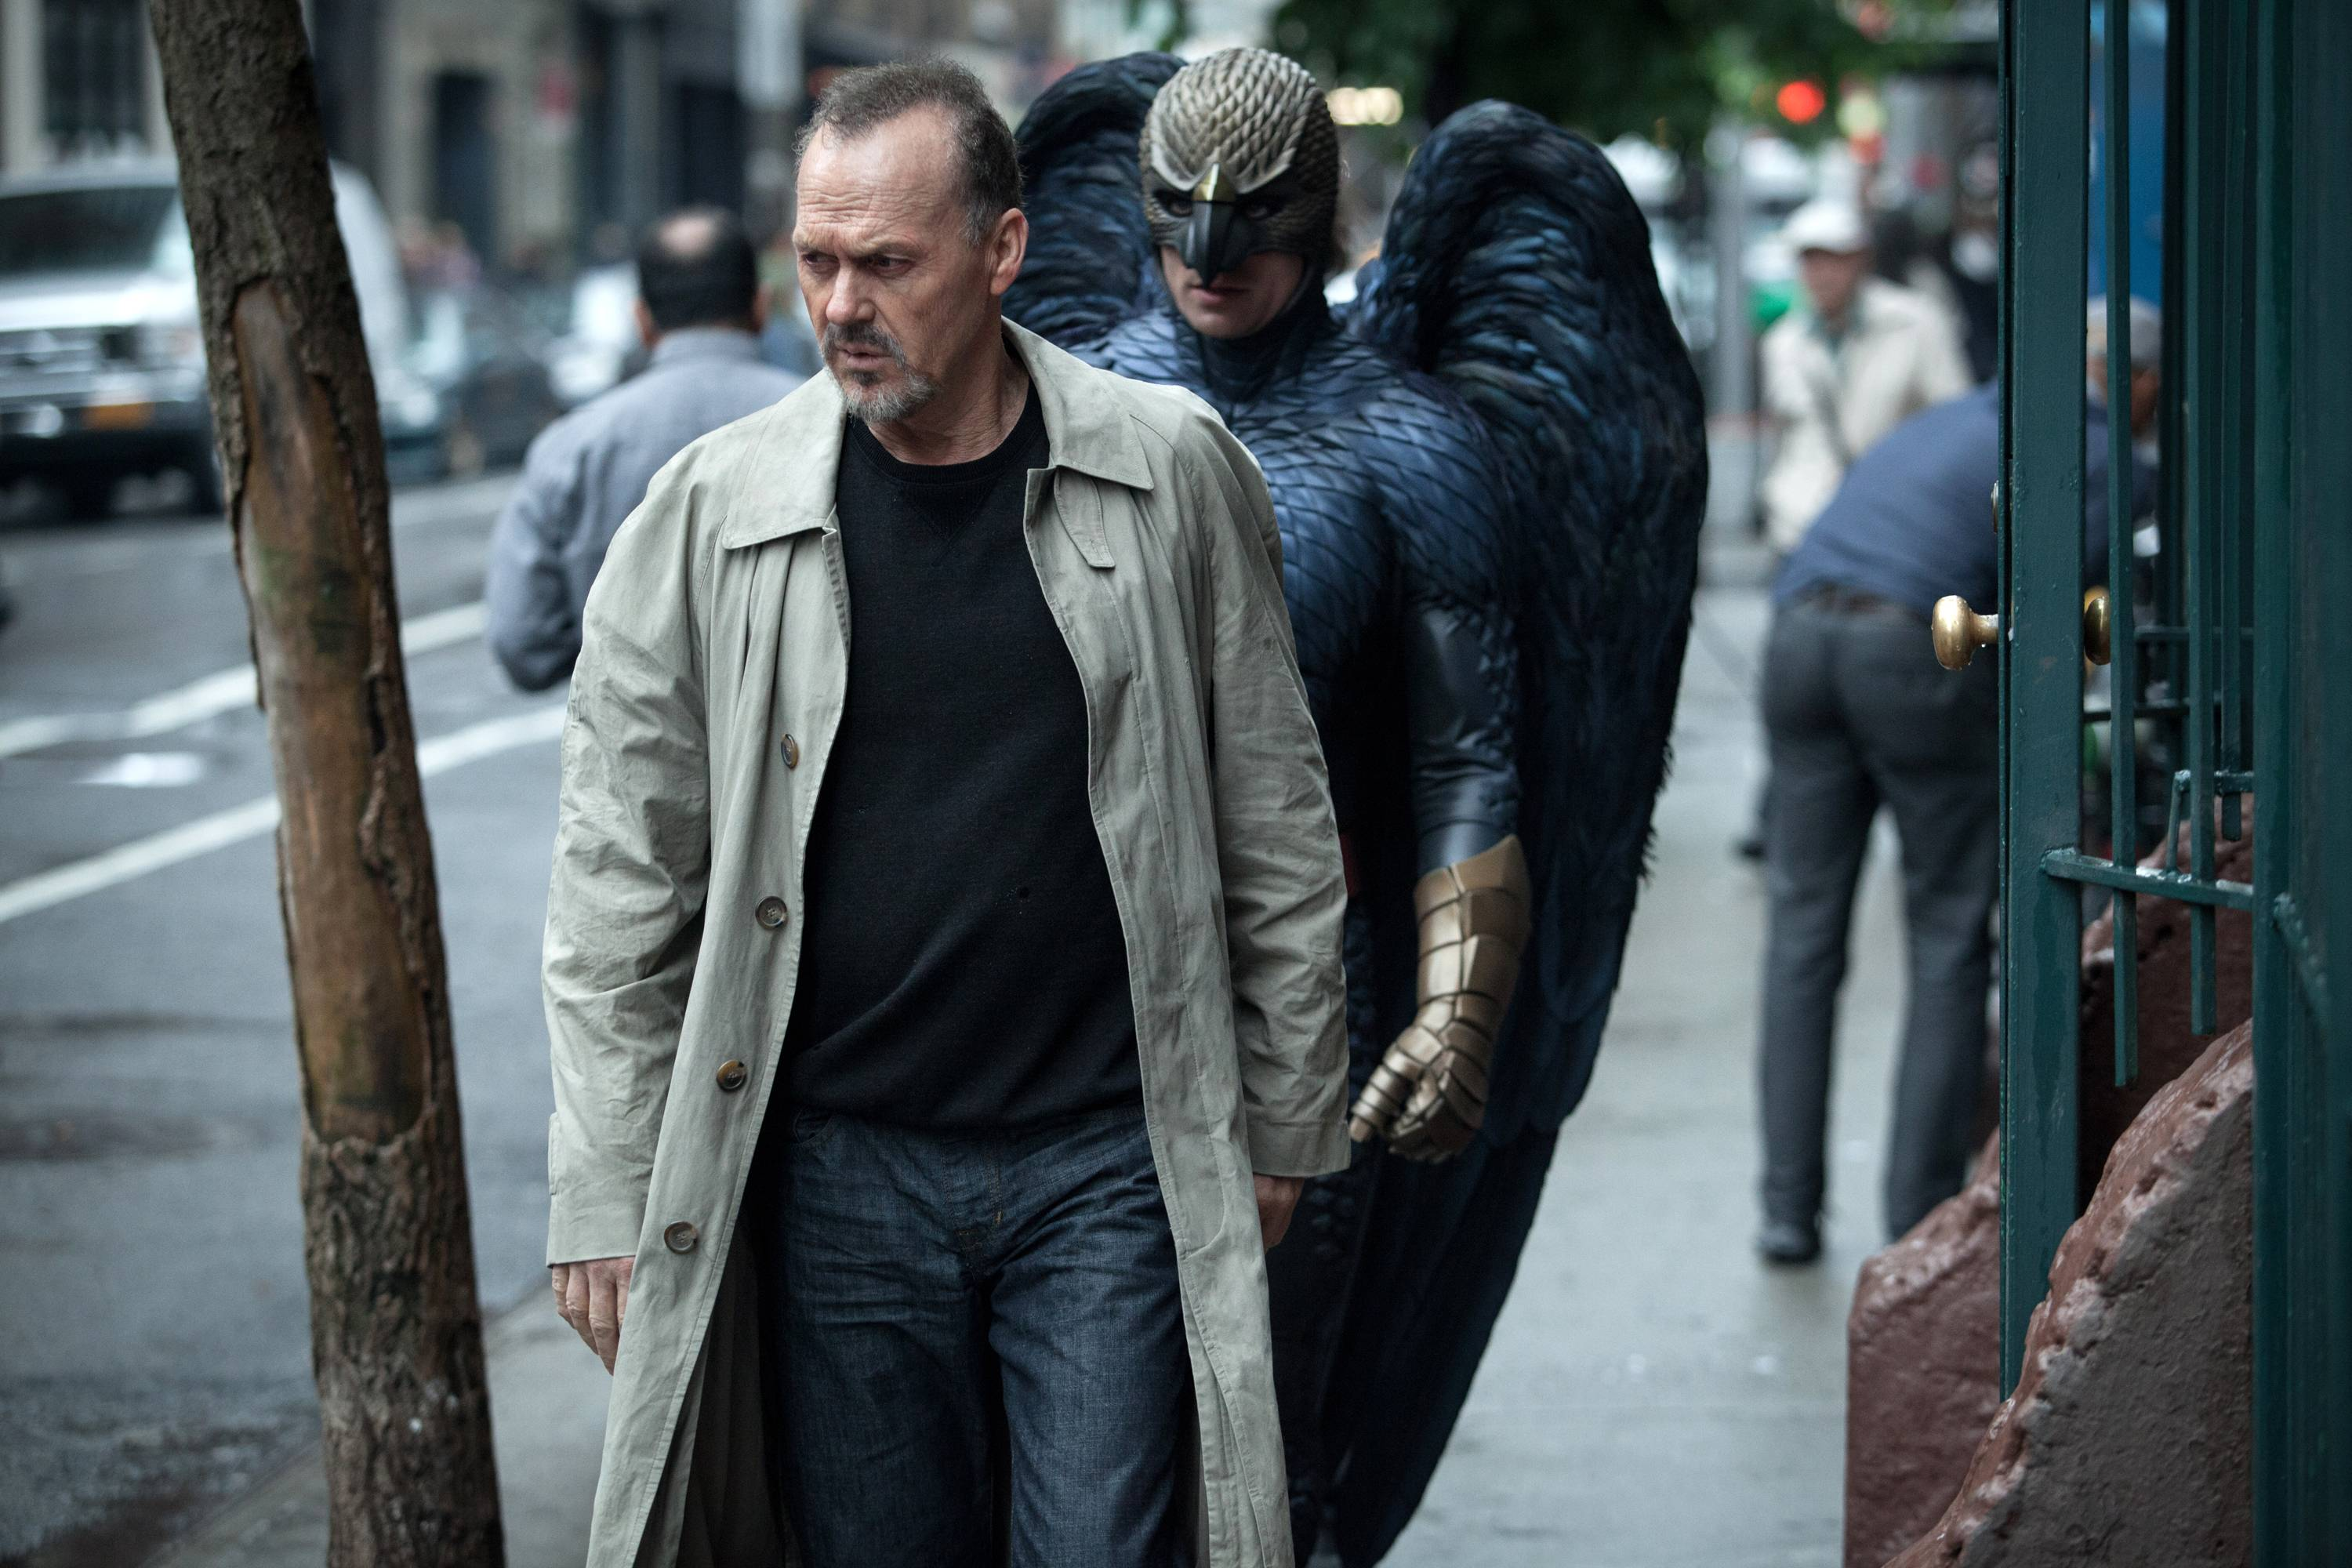 'Birdman,' 'Budapest' top Oscar nominations with 9 nods each